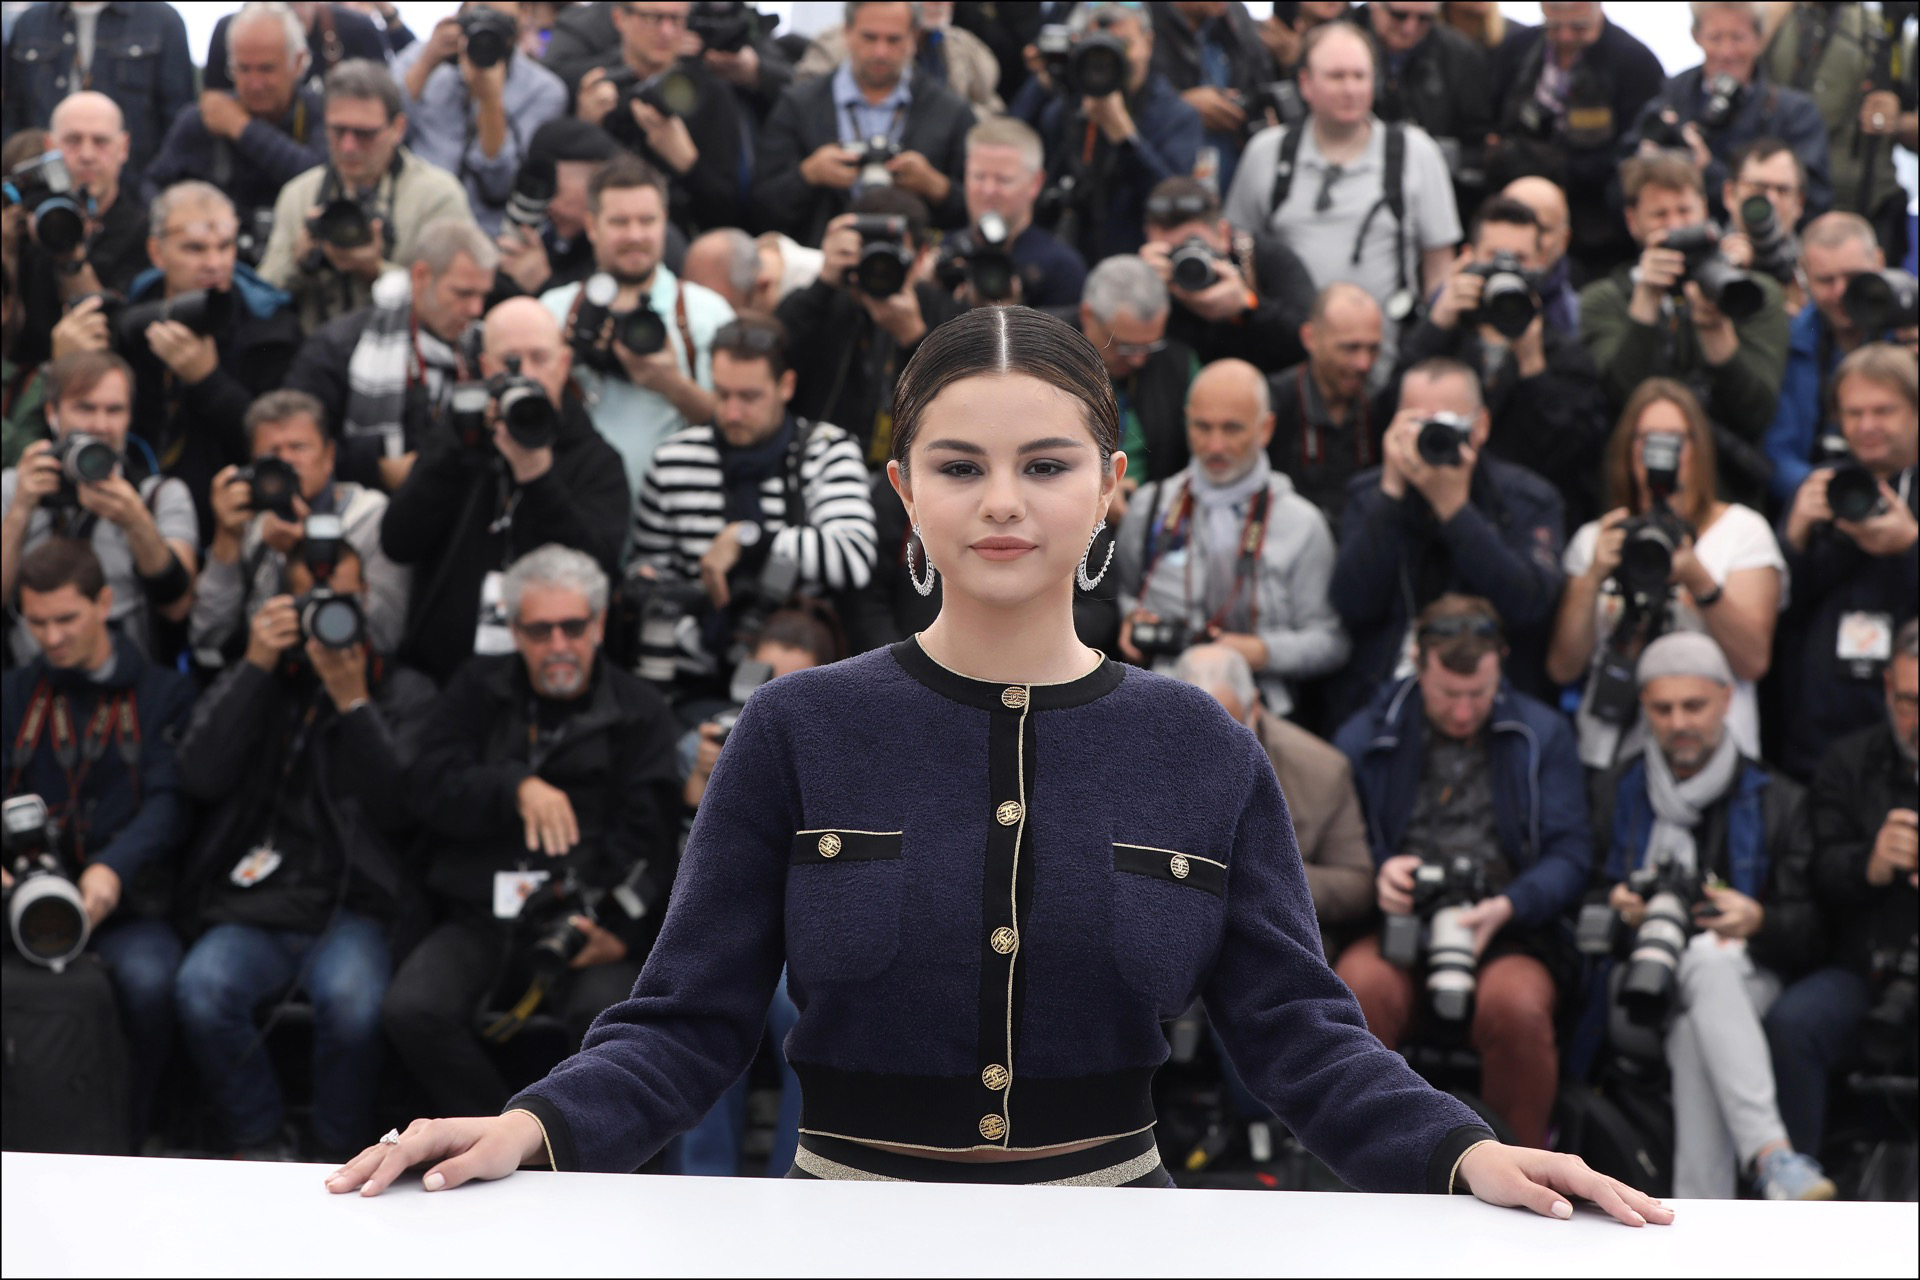 Selena Gomez sorprendió con un look formal chic en Cannes.